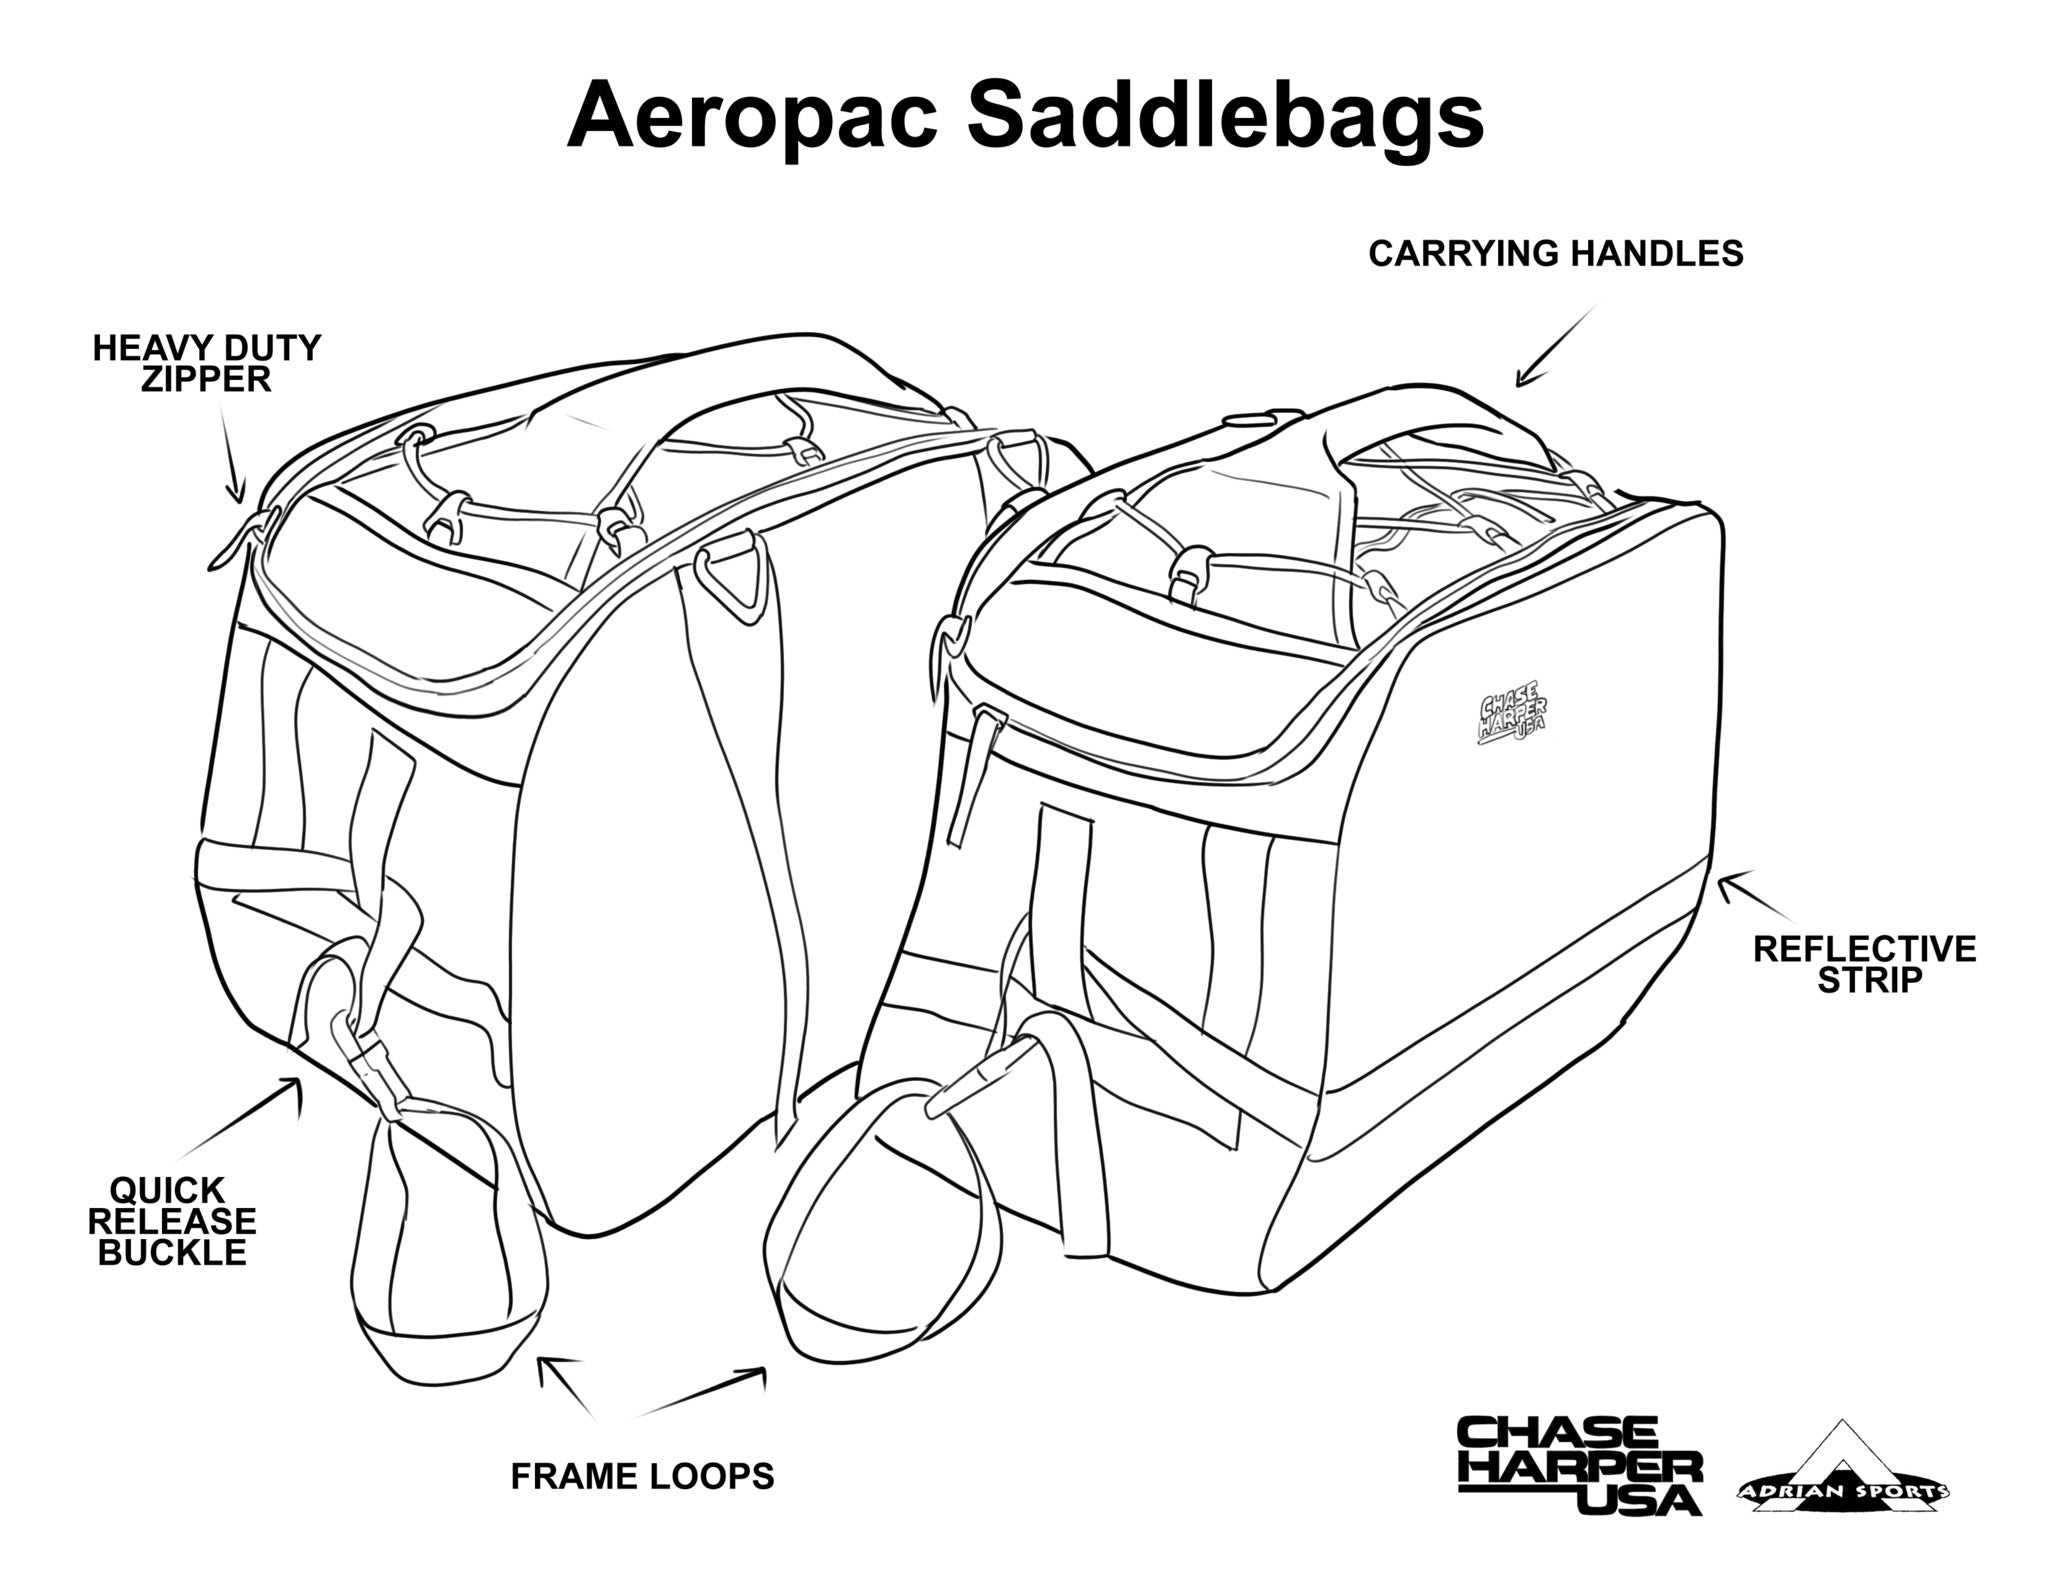 Chase Harper USA, The Best Motorcycle Luggage,Tank bags